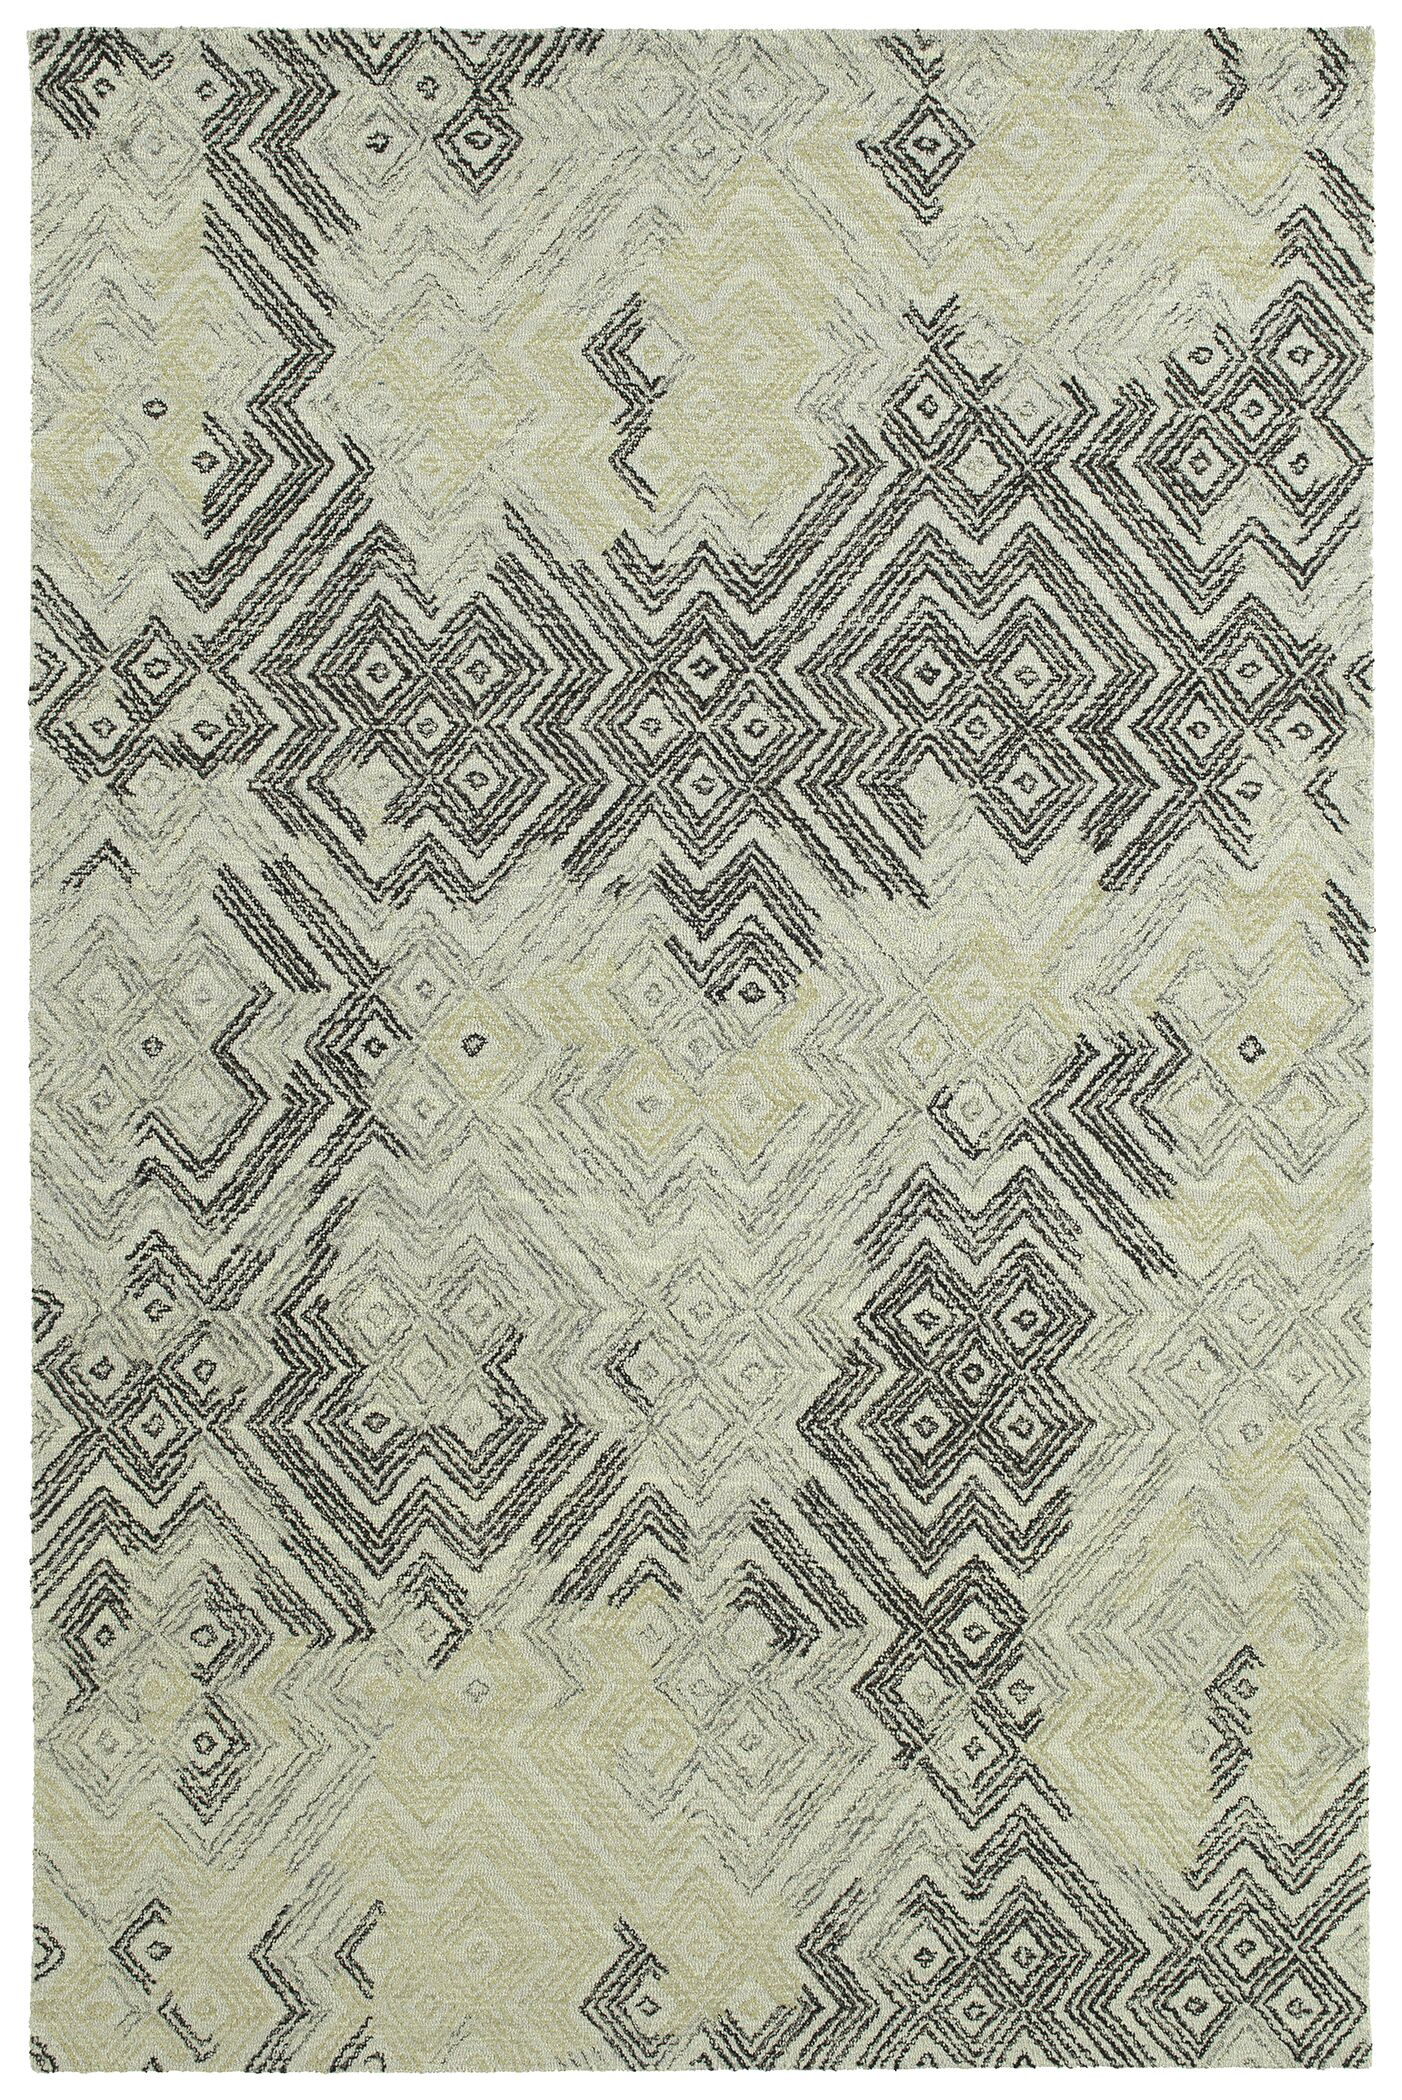 Stockman Hand-Tufted Wool Ivory/Gray Area Rug Rug Size: Rectangle 4' x 6'